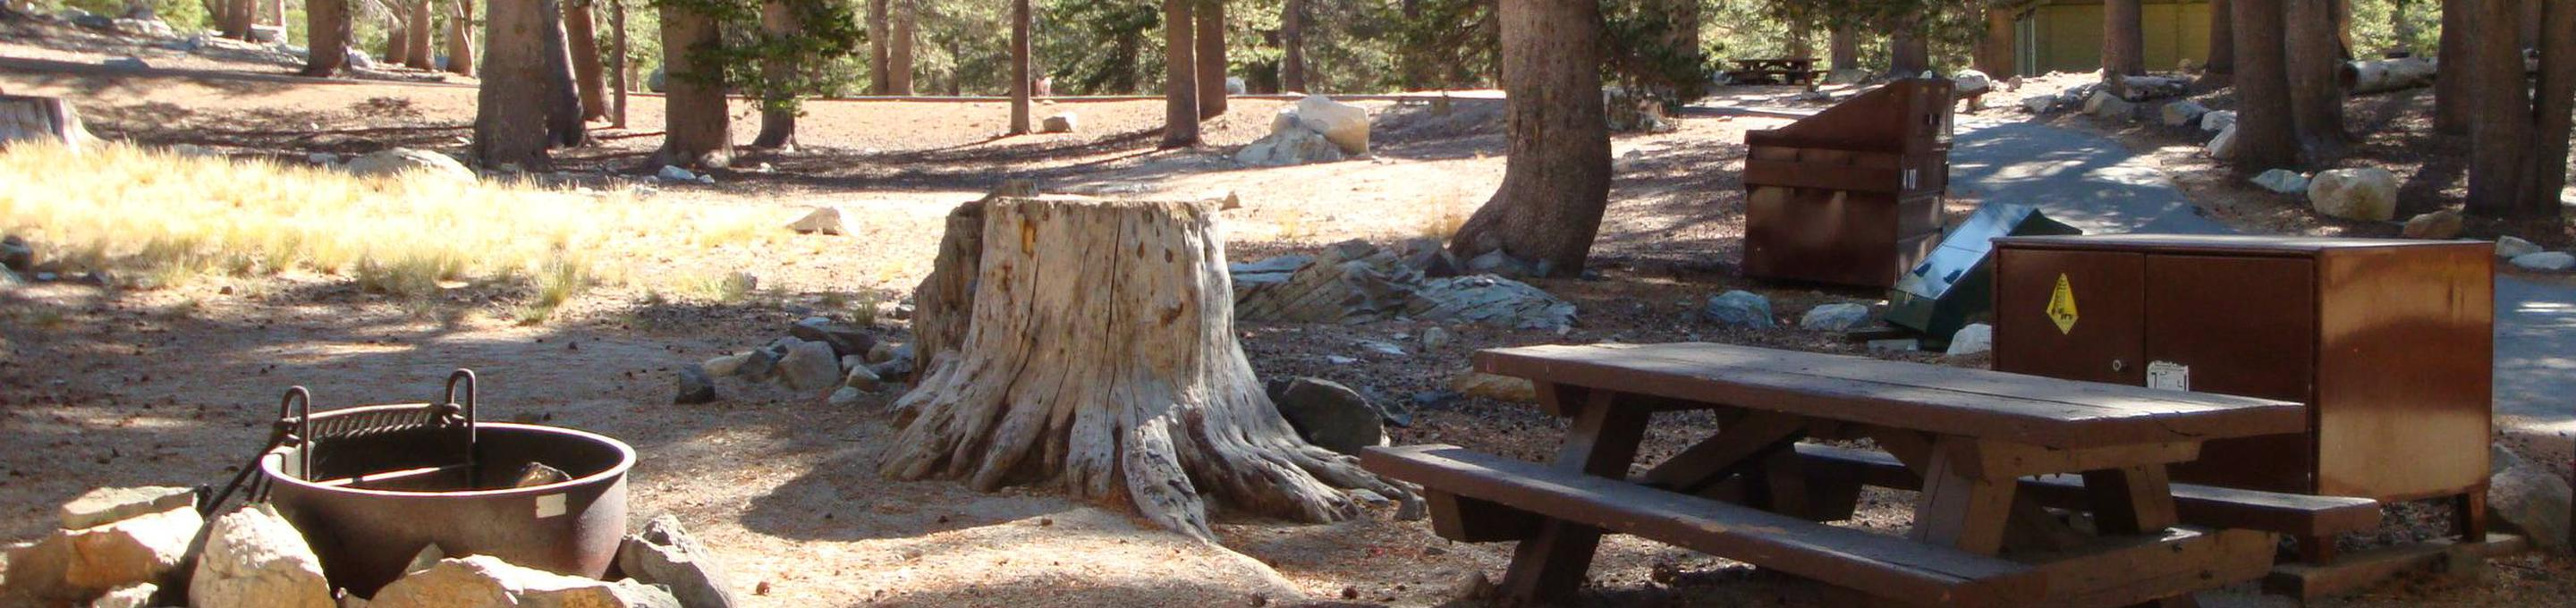 Lake Mary Campground SITE 7